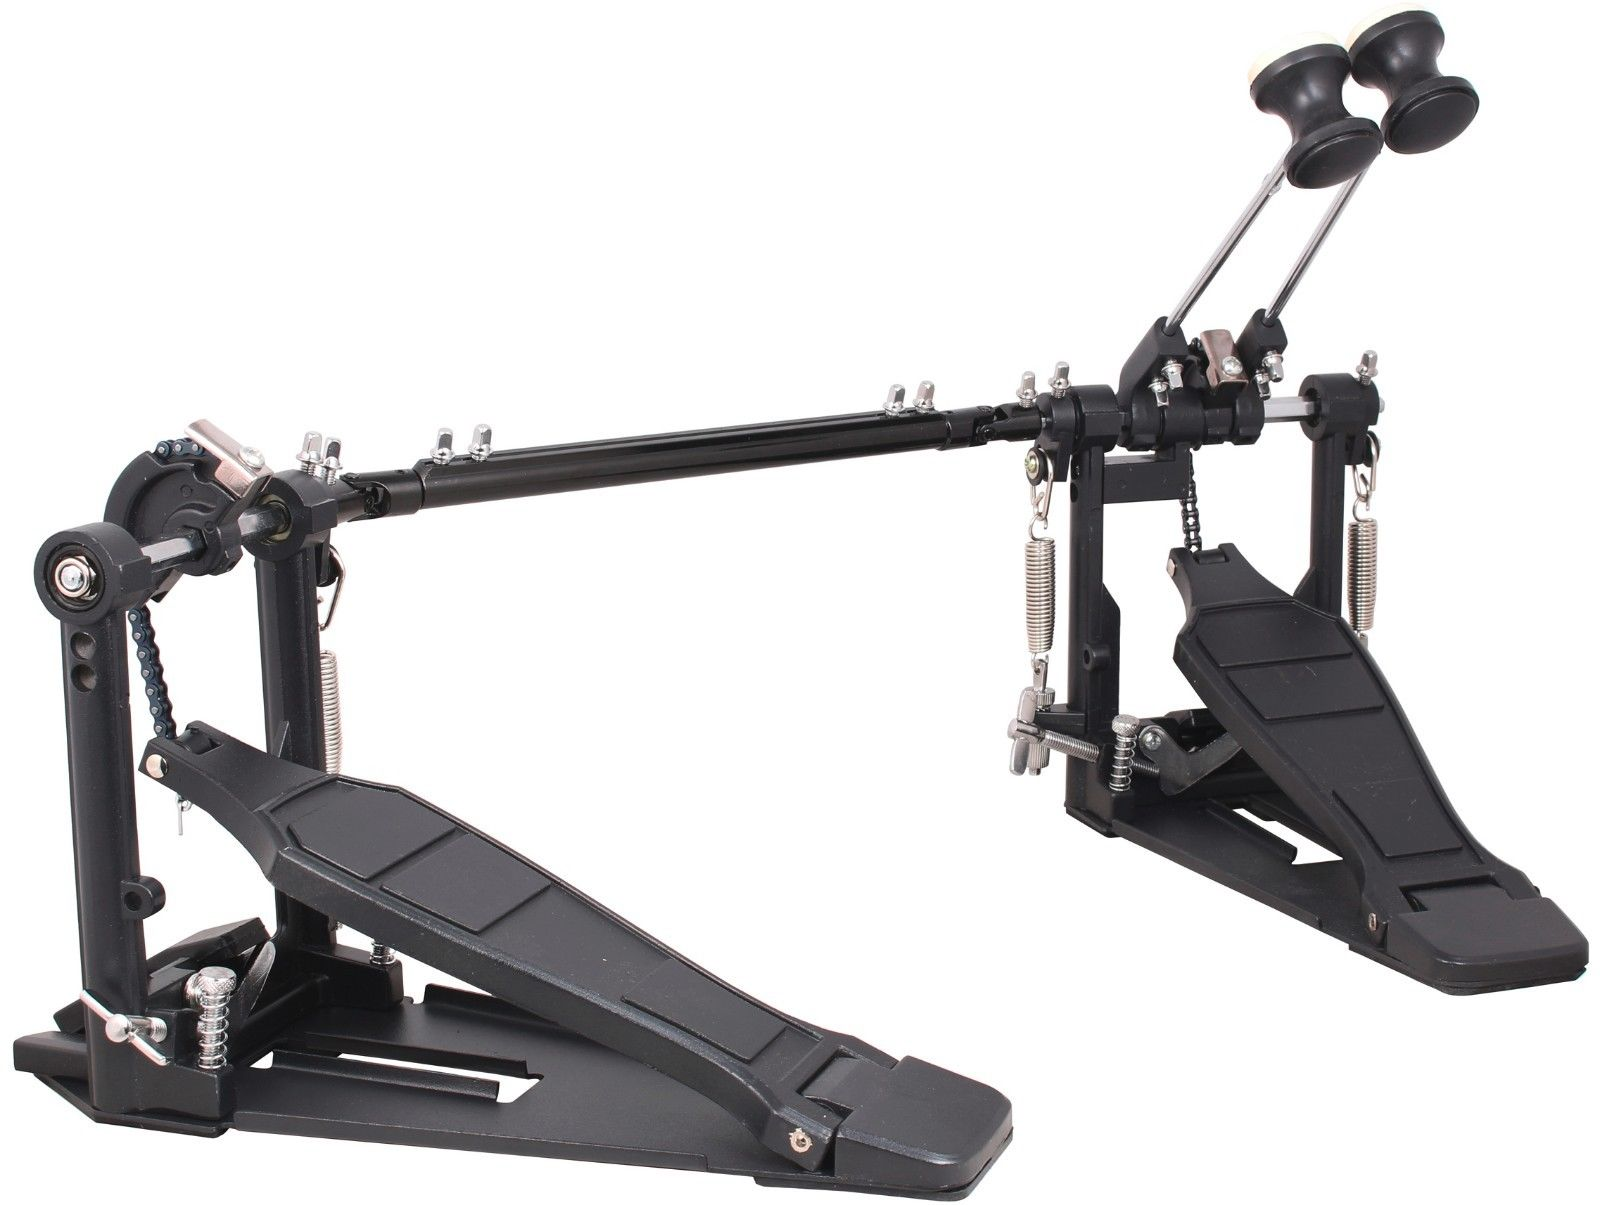 Double Bass Drum Pedal Dual Foot Kick Pedal Percussion Instrument Parts & Accessories With... by